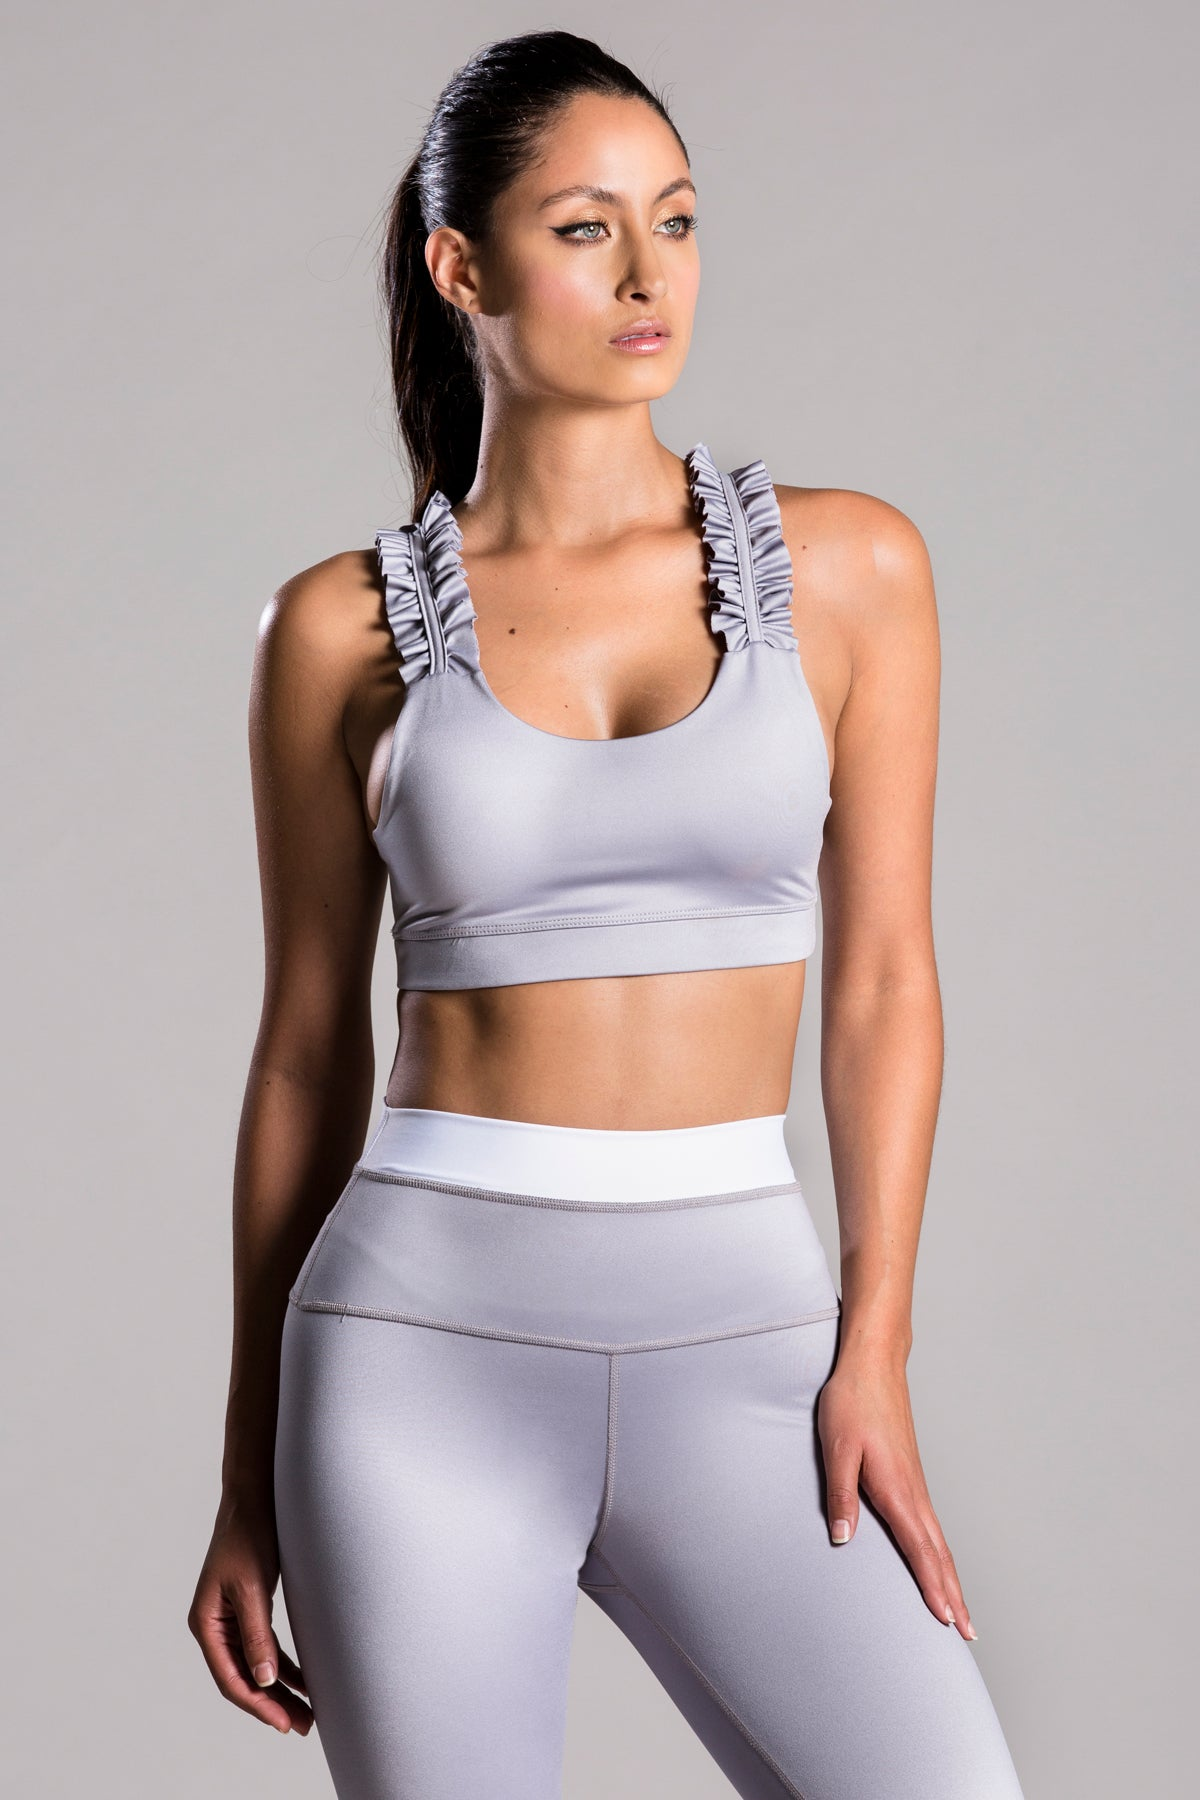 Sarah Basic Gray Top For Body Barre